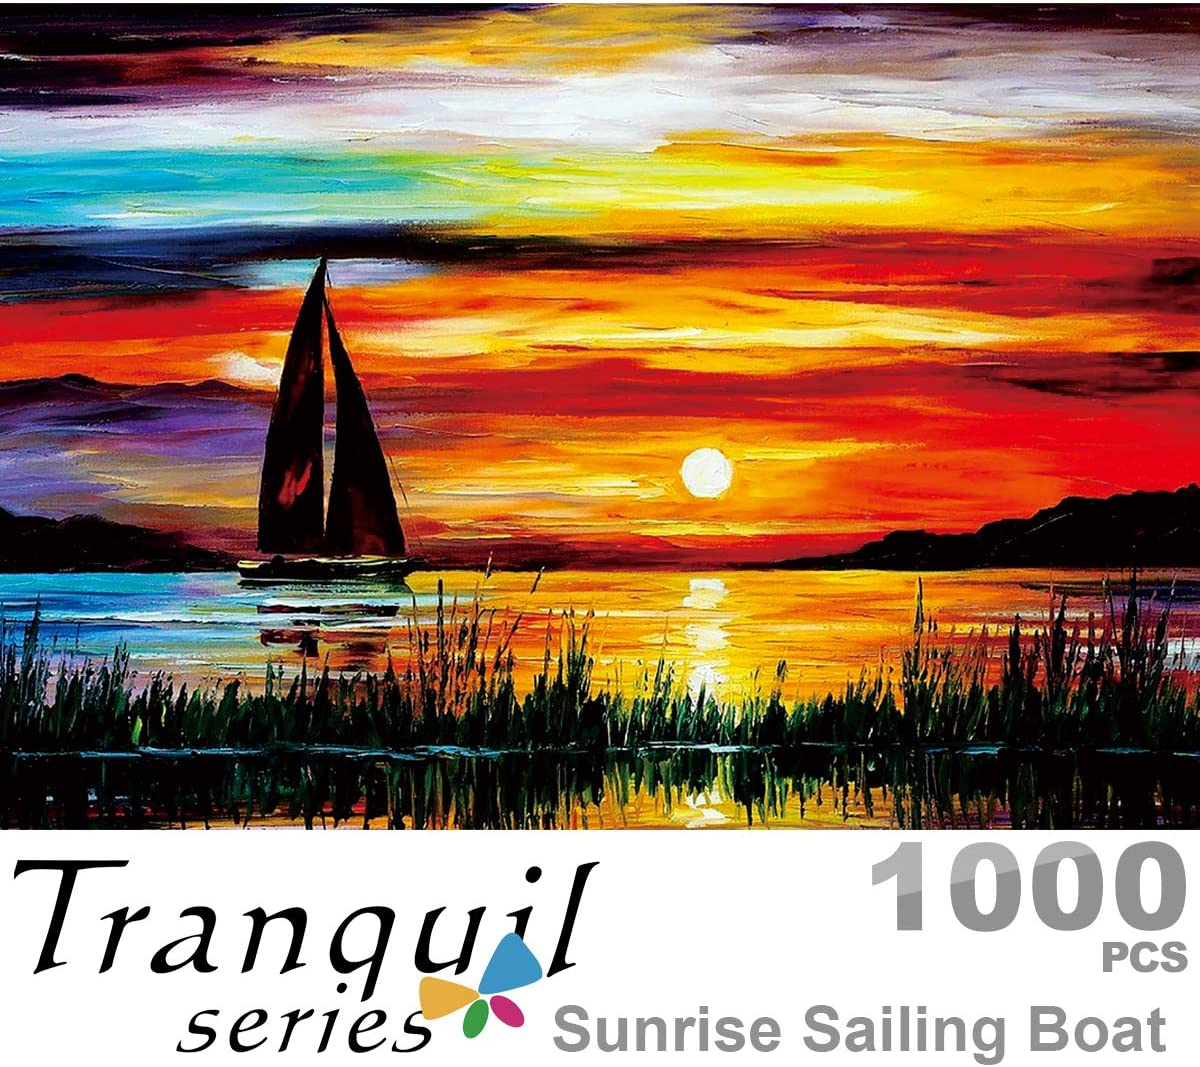 Ingooood- Jigsaw Puzzles 1000 Pieces for Adult- Tranquil Series-Sunrise Sailing Boat_IG-0459 Entertainment Wooden Puzzles Toys